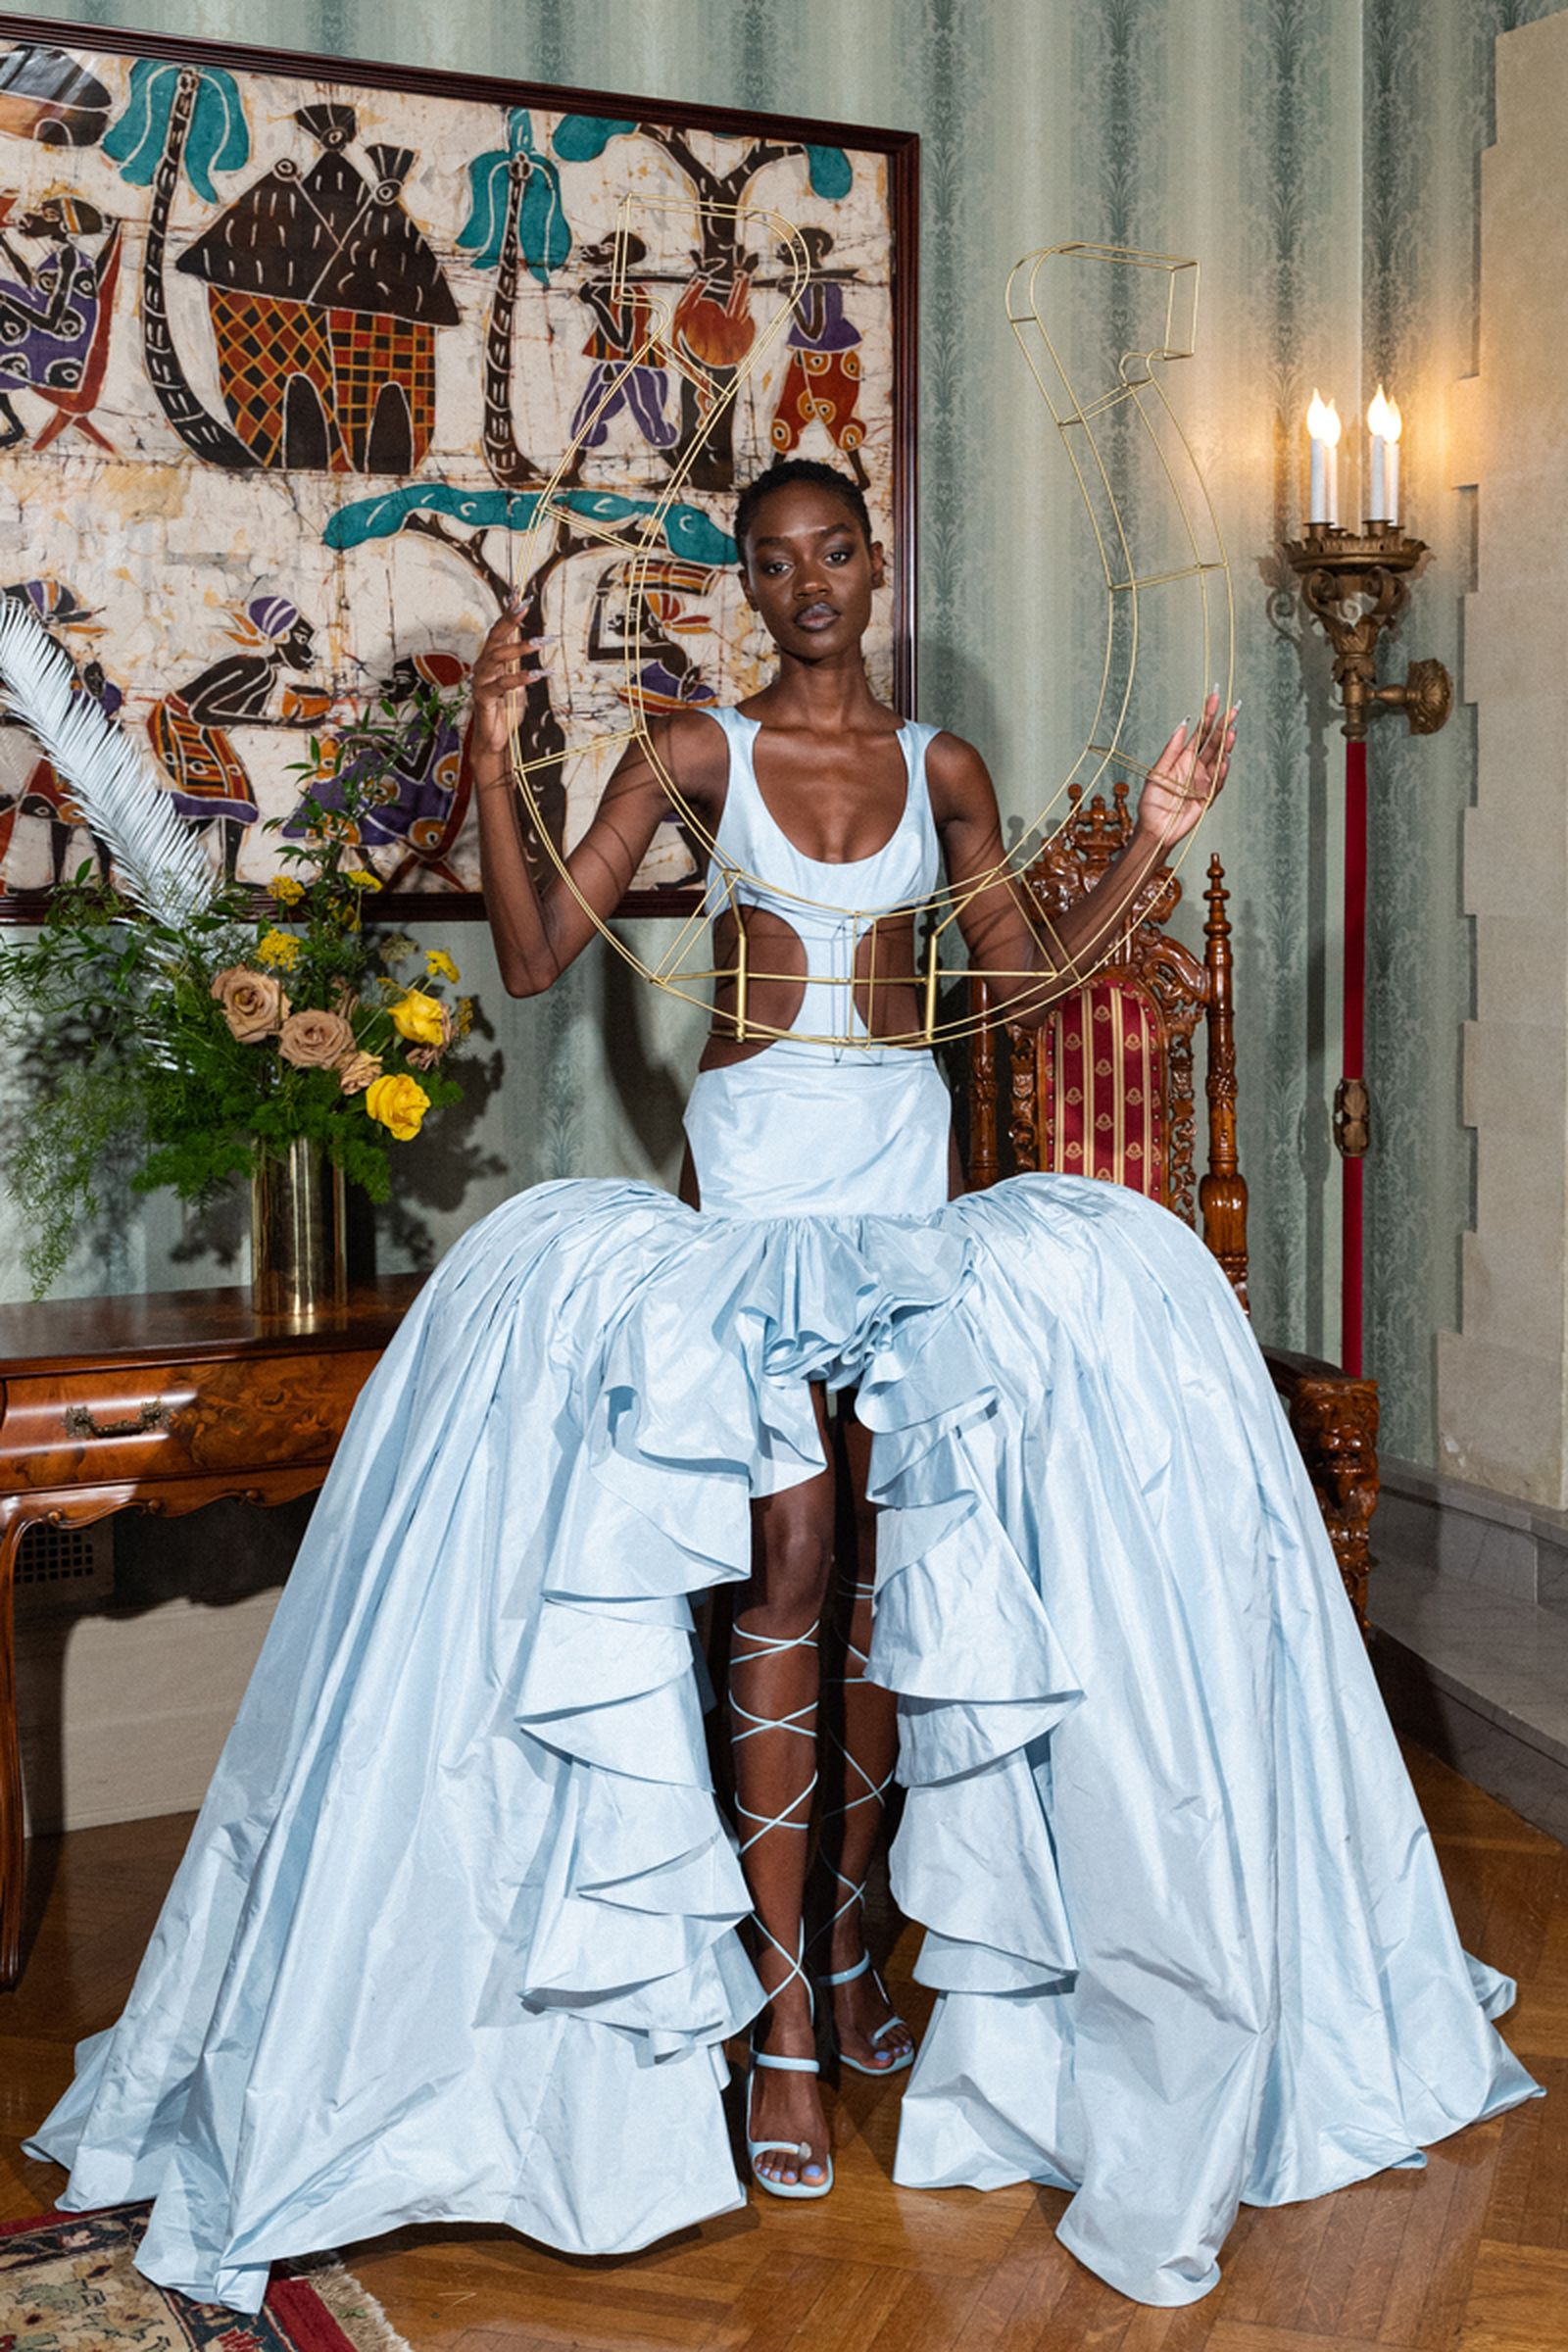 PYER MOSS COUTURE 1 FASHION SHOW : FIRST LOOKS